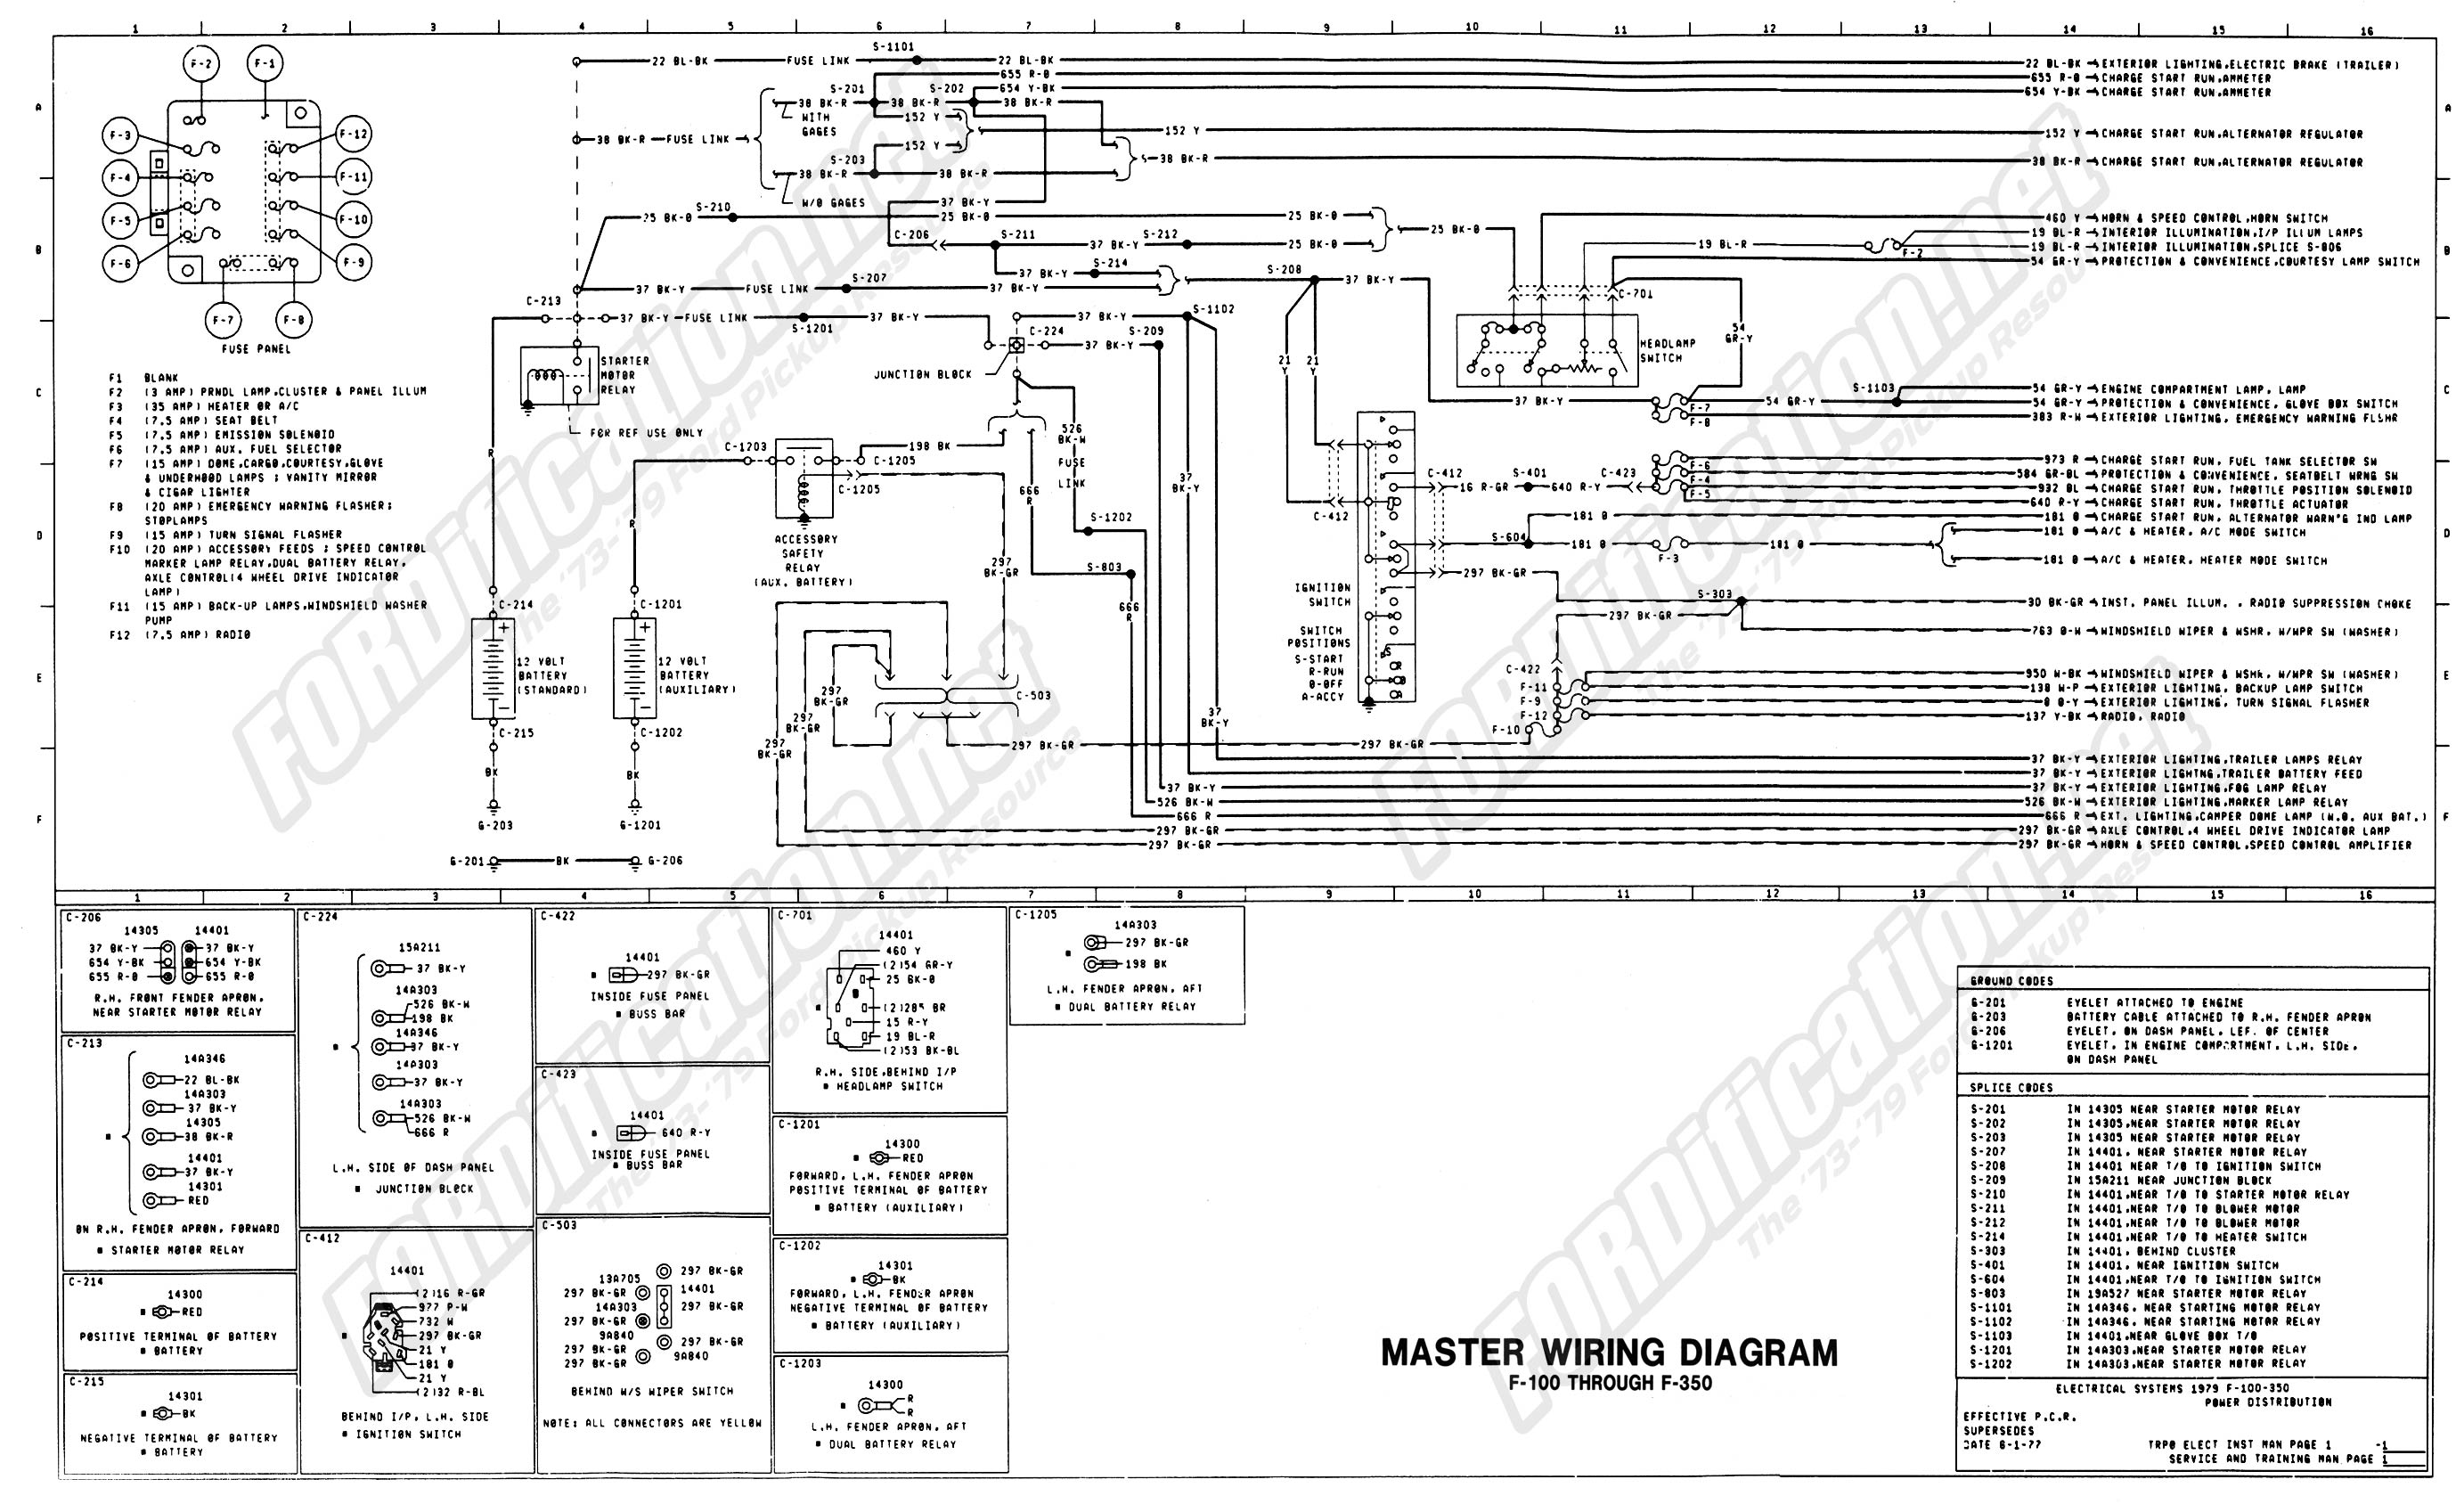 1977 ford 351 wiring diagram on no electrical, completely dead, won't start page 4 ford truck 1977 Ford Ignition System 75 Ford 351 Cleveland Engine